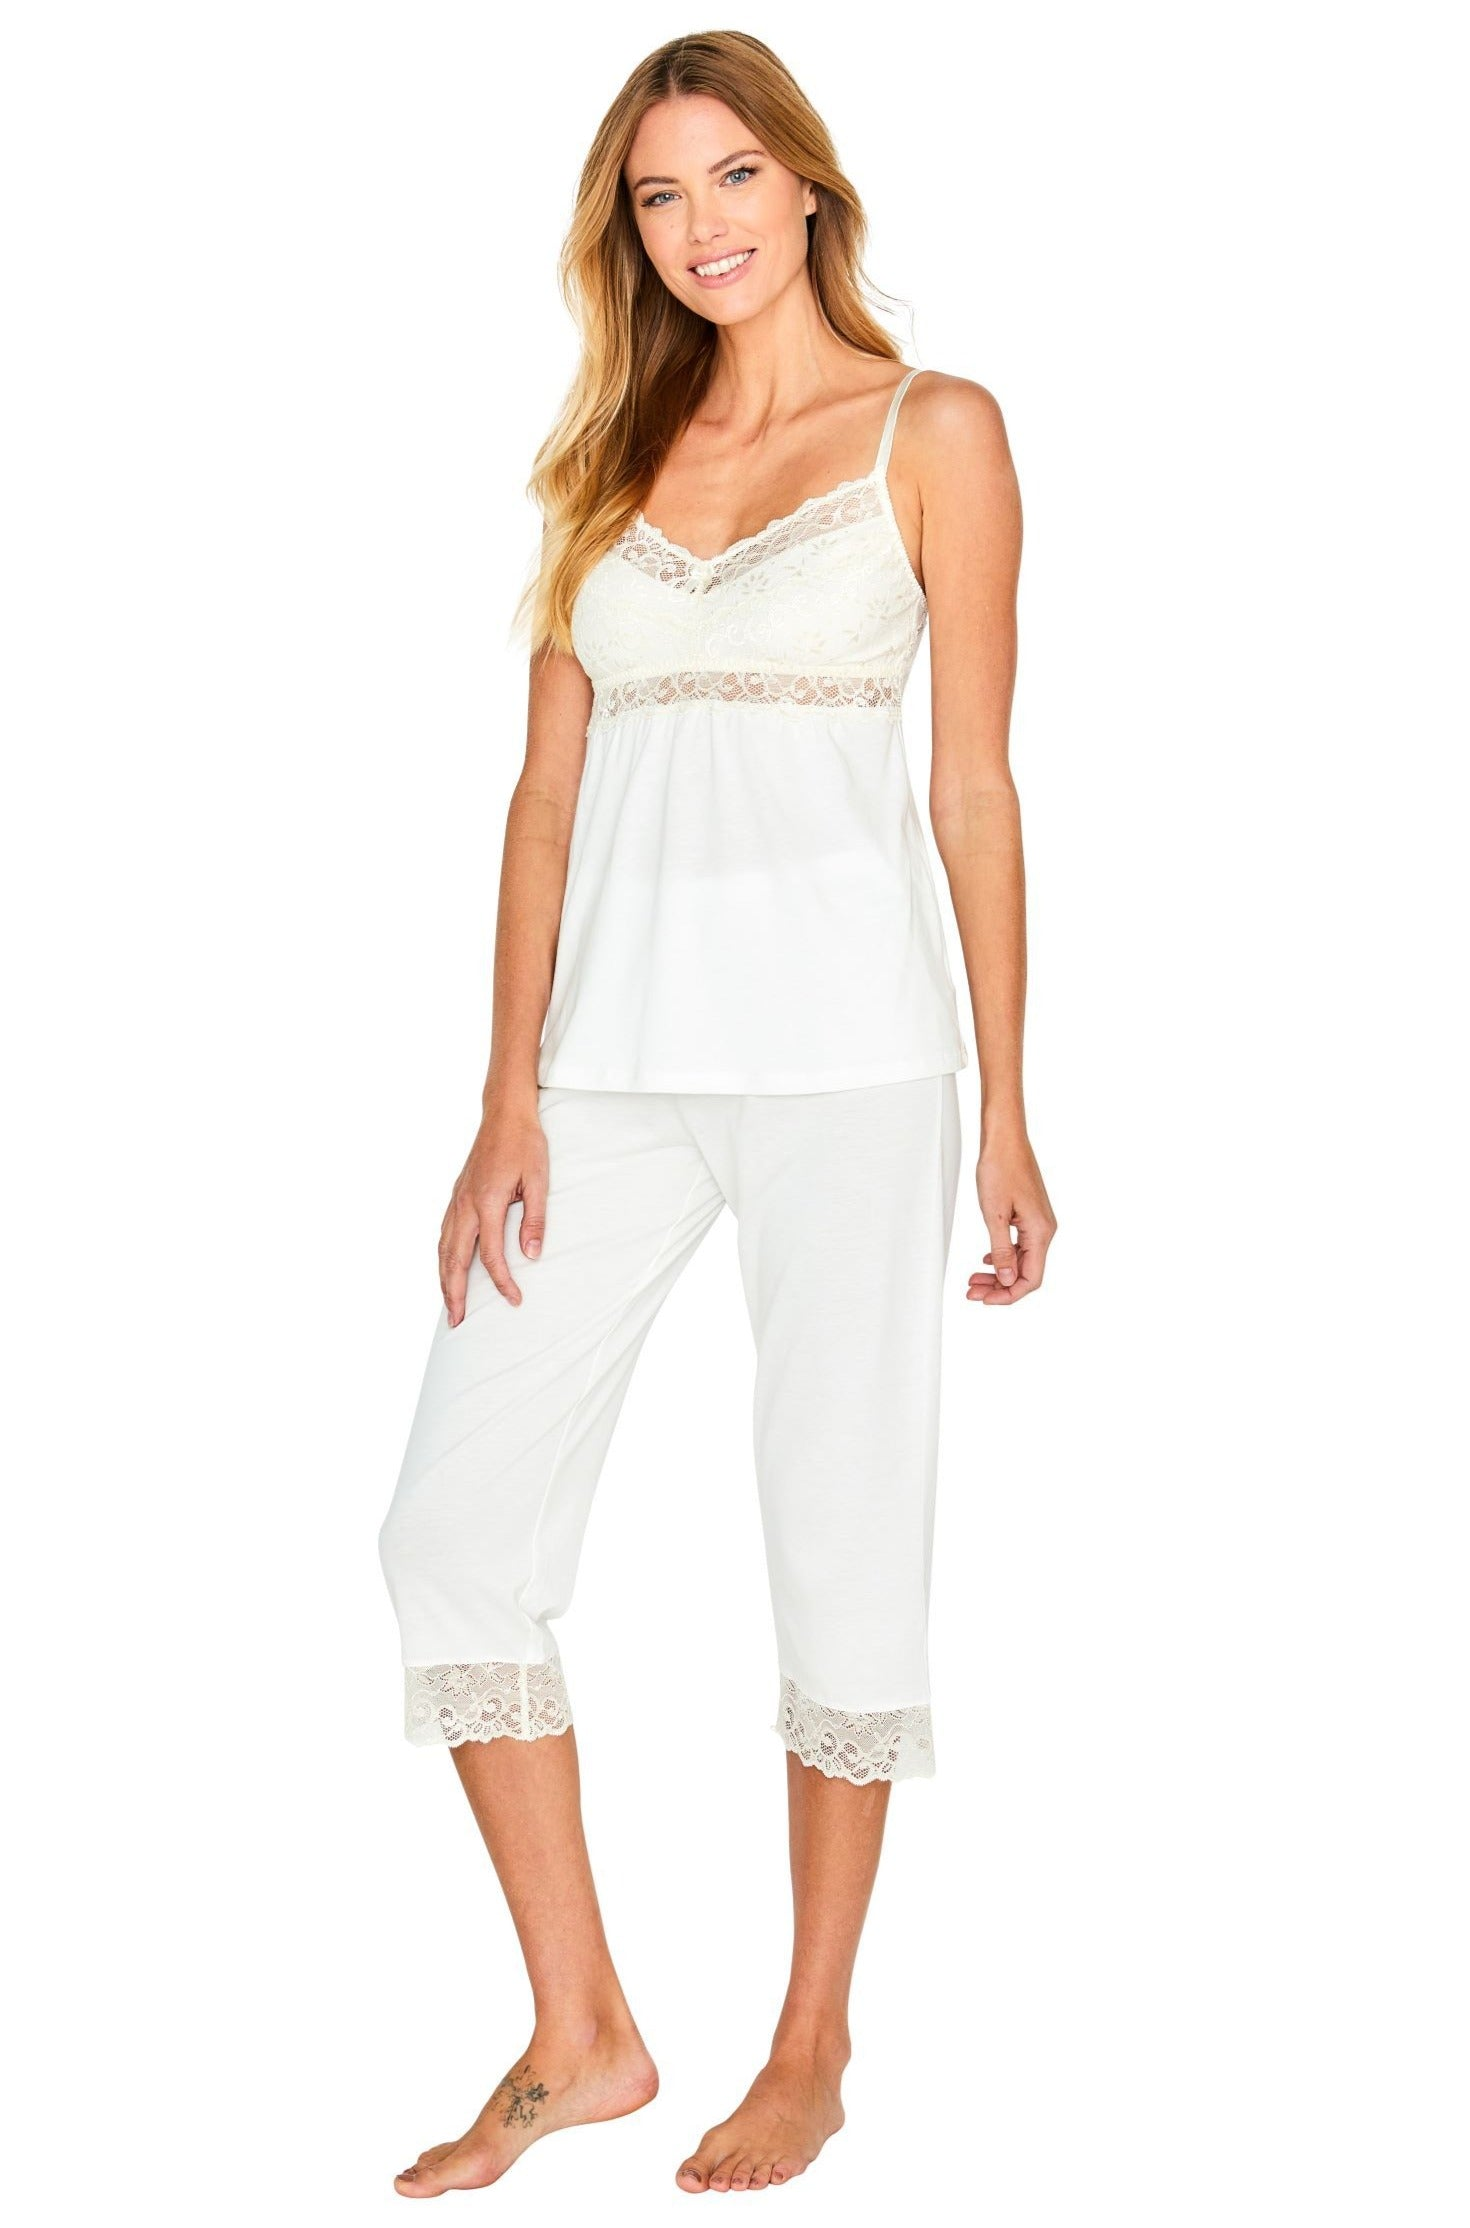 Leslie Spaghetti Strap Camisole Cropped Pant PJ Set